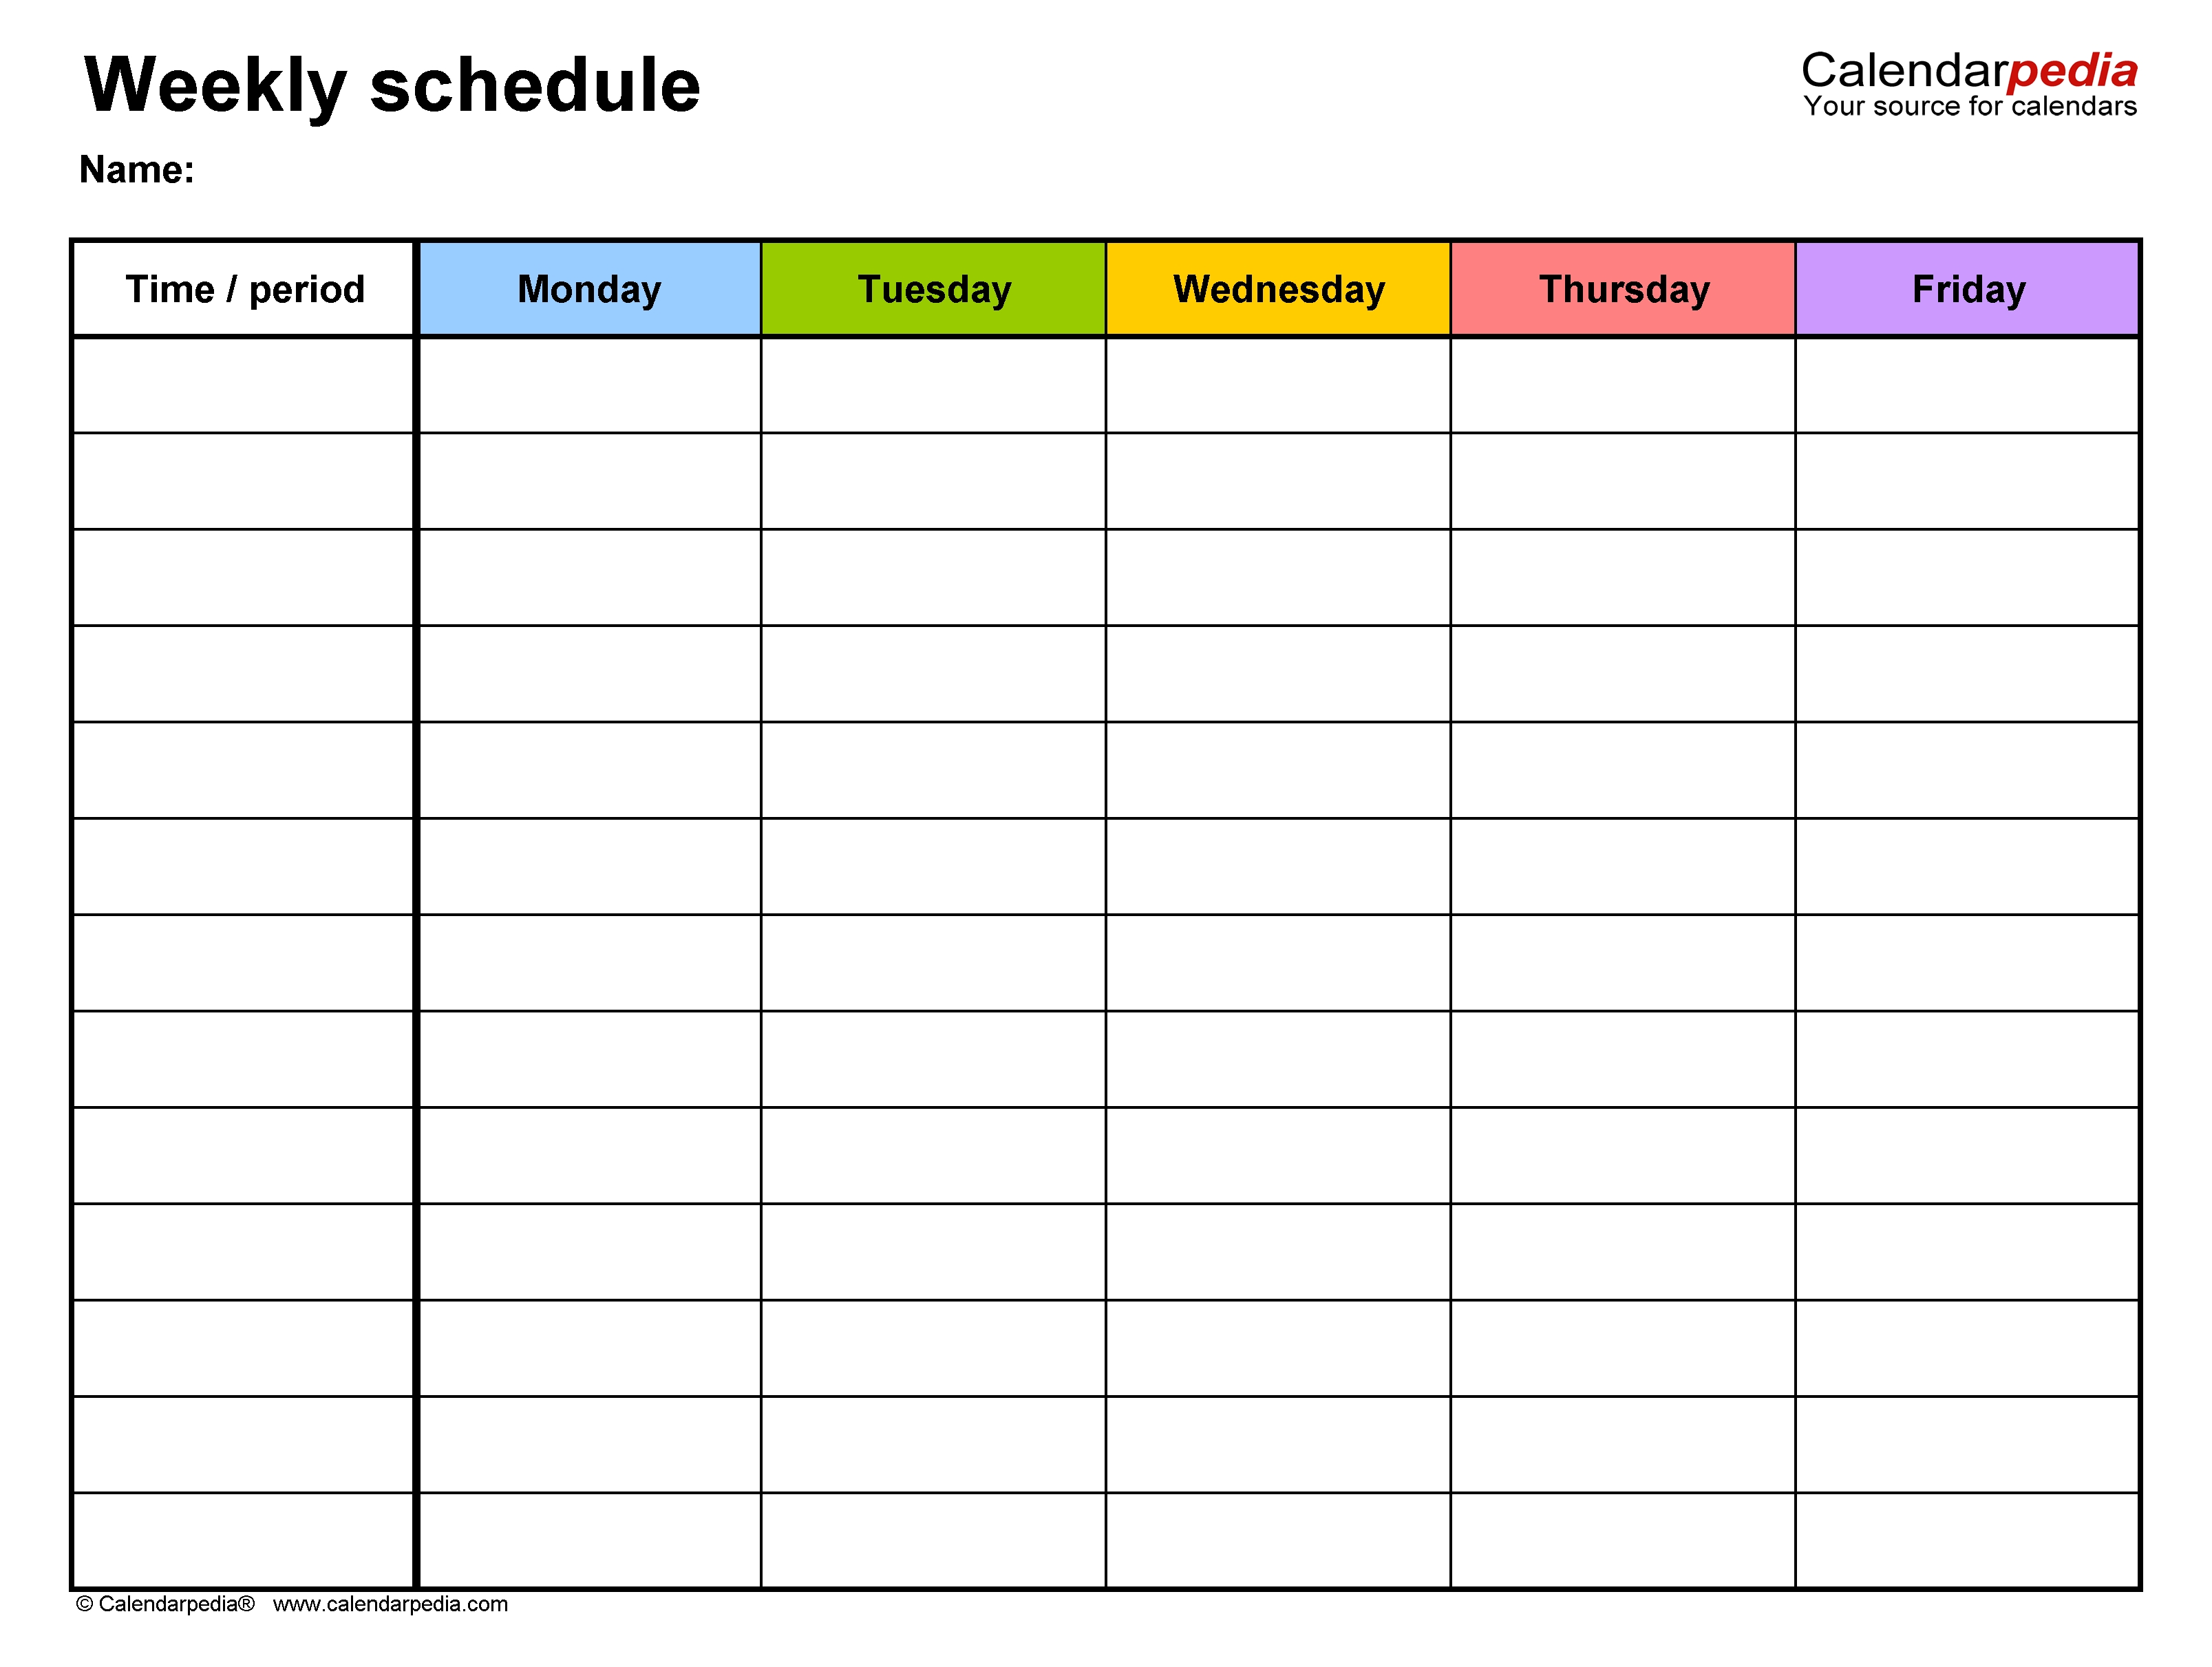 Free Weekly Schedules For Word - 18 Templates 7 Day Appointment Calendar Template